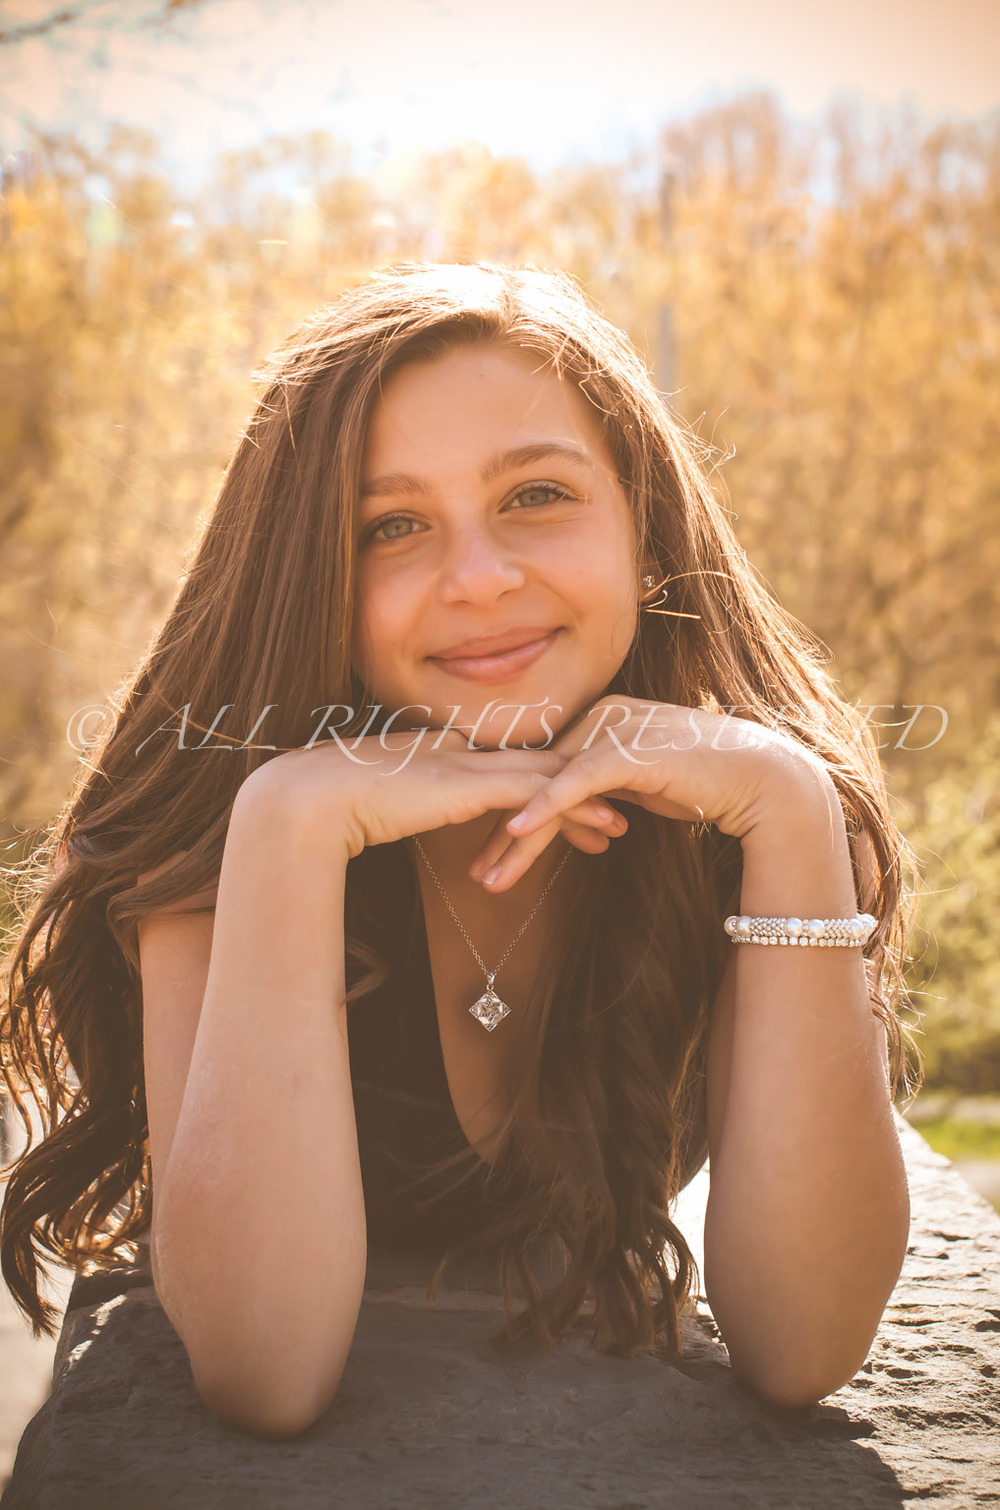 This photo was from Jordan K's Family Photo Shoot for her Bat Mitzvah. A lovely young lady, vibrant & beautiful!